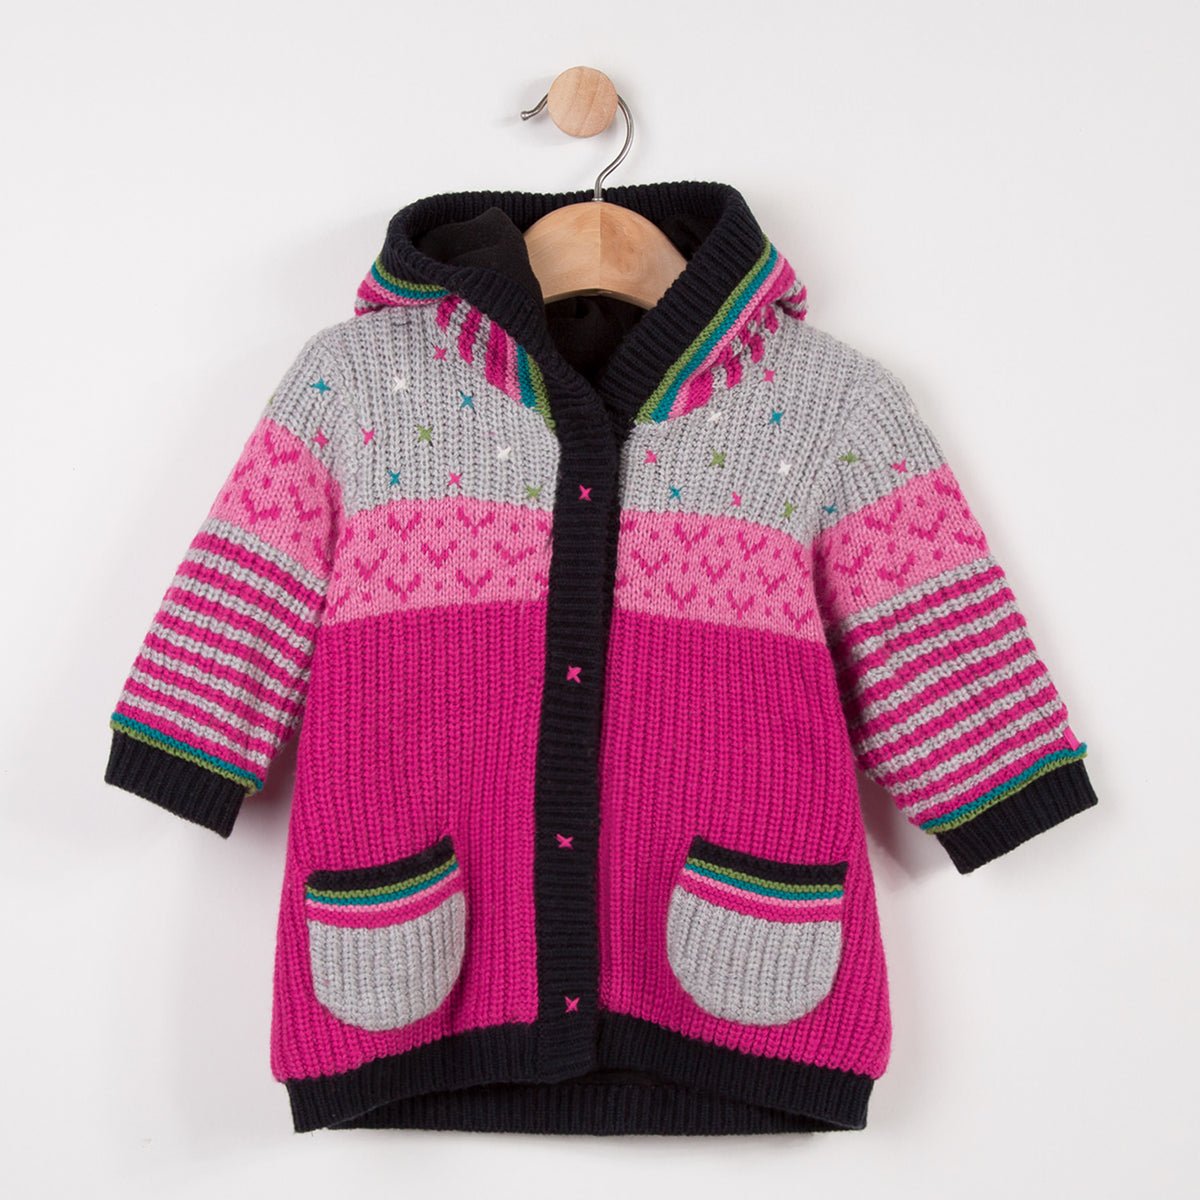 Woolly multicolored knit jacket with small embroideries with soft and warm fleece lining. Lined hood. Two patch pockets snd fastened by practical press studs by Catimini.